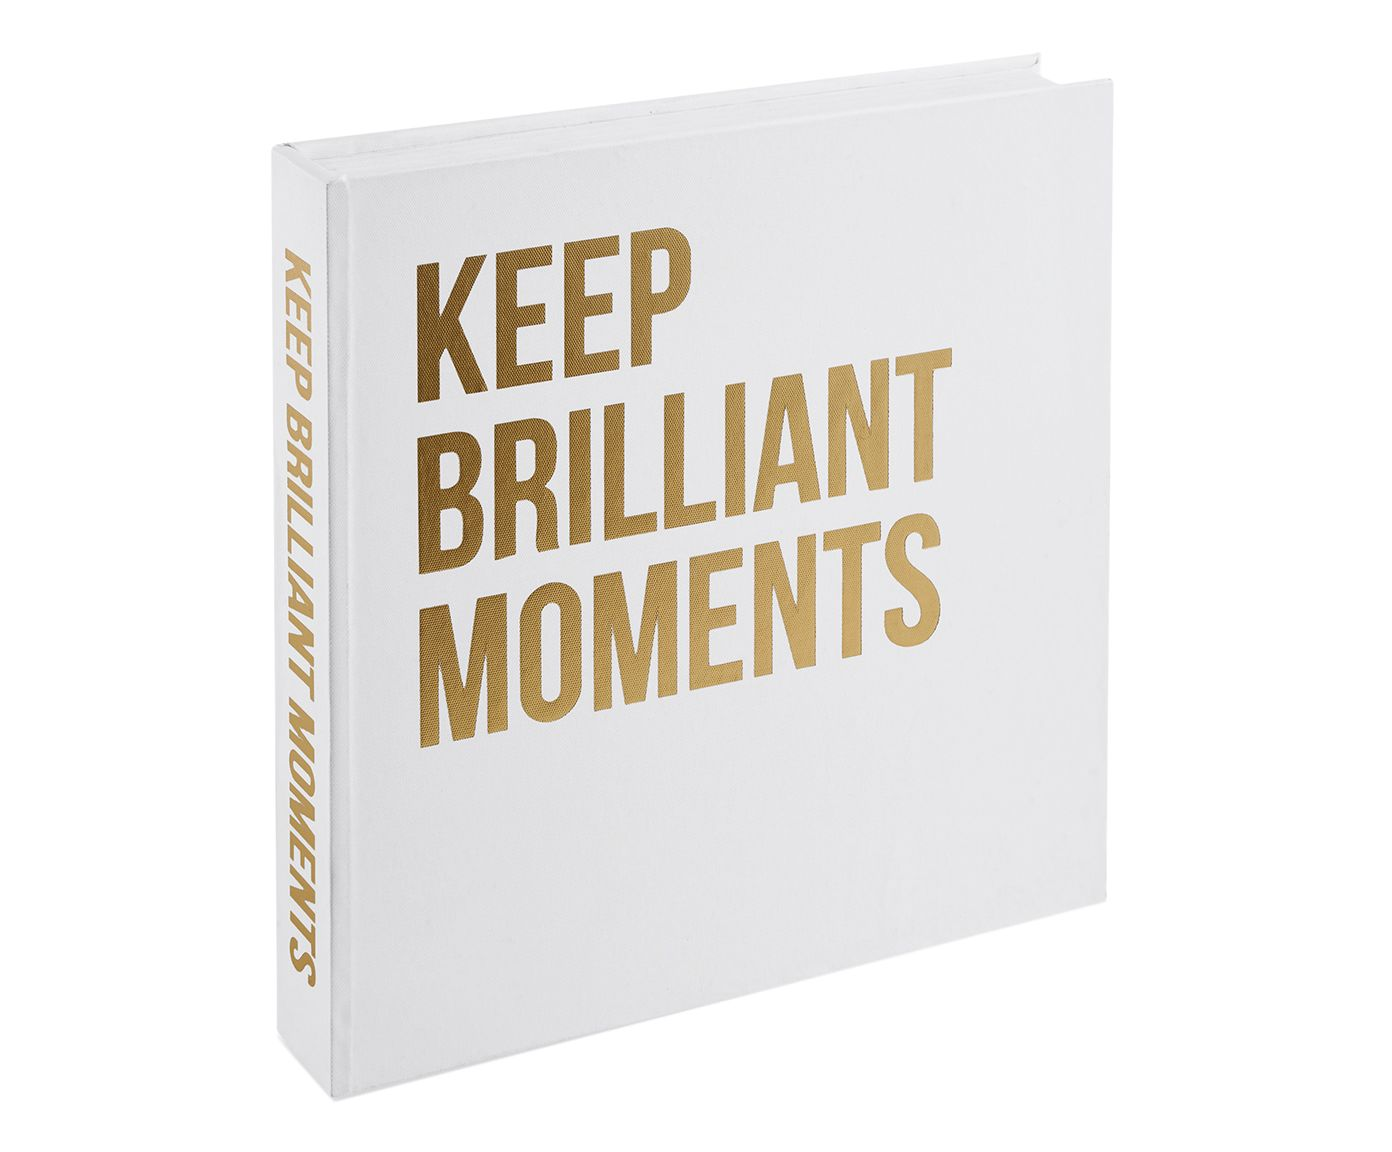 Book Box Keep Brilliant Moments - 30cm | Westwing.com.br